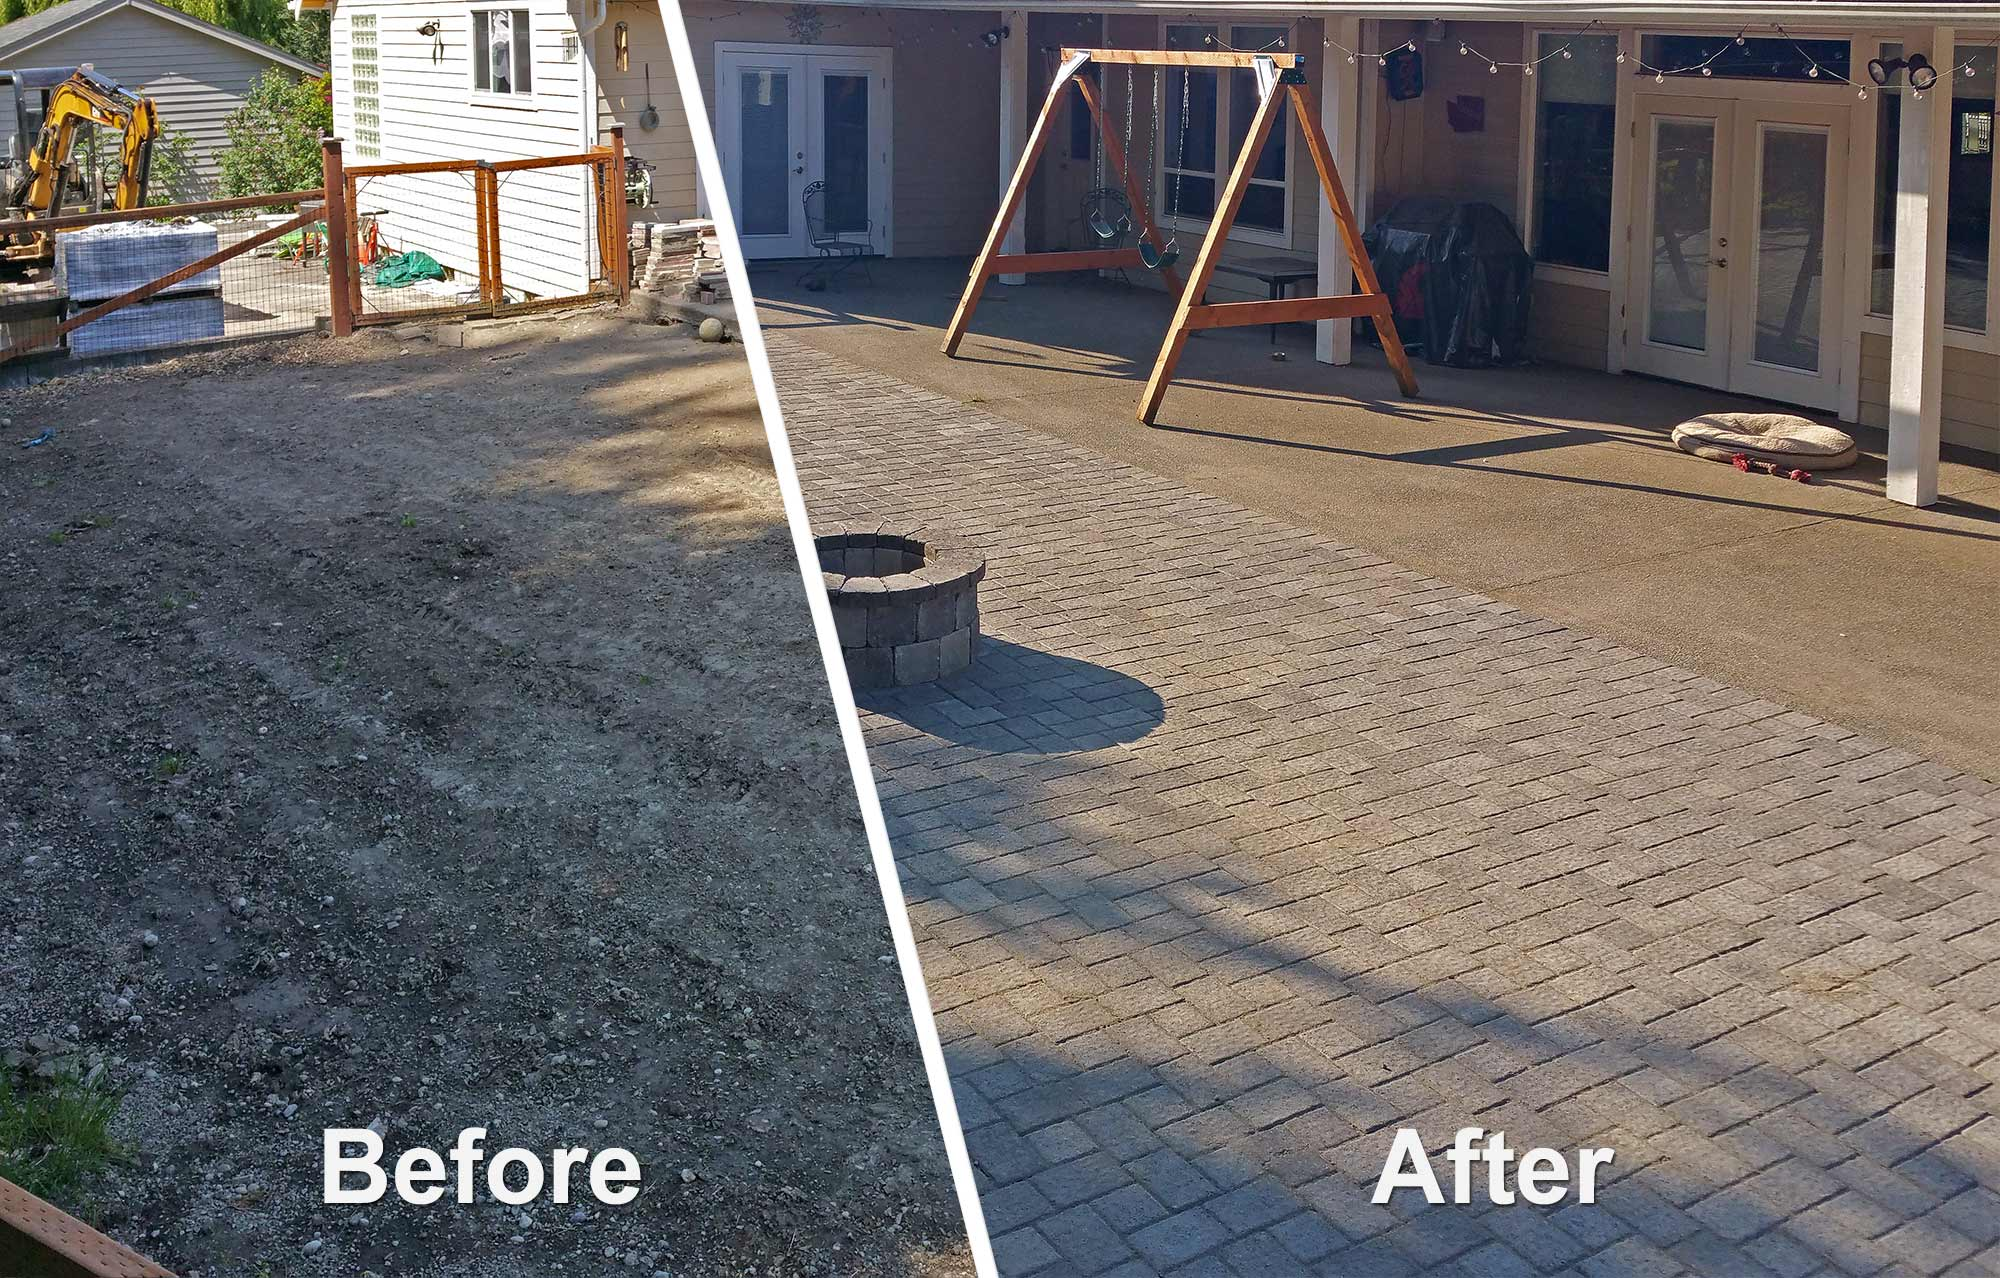 before and after owner photos before and after owner photos - Patio Installation